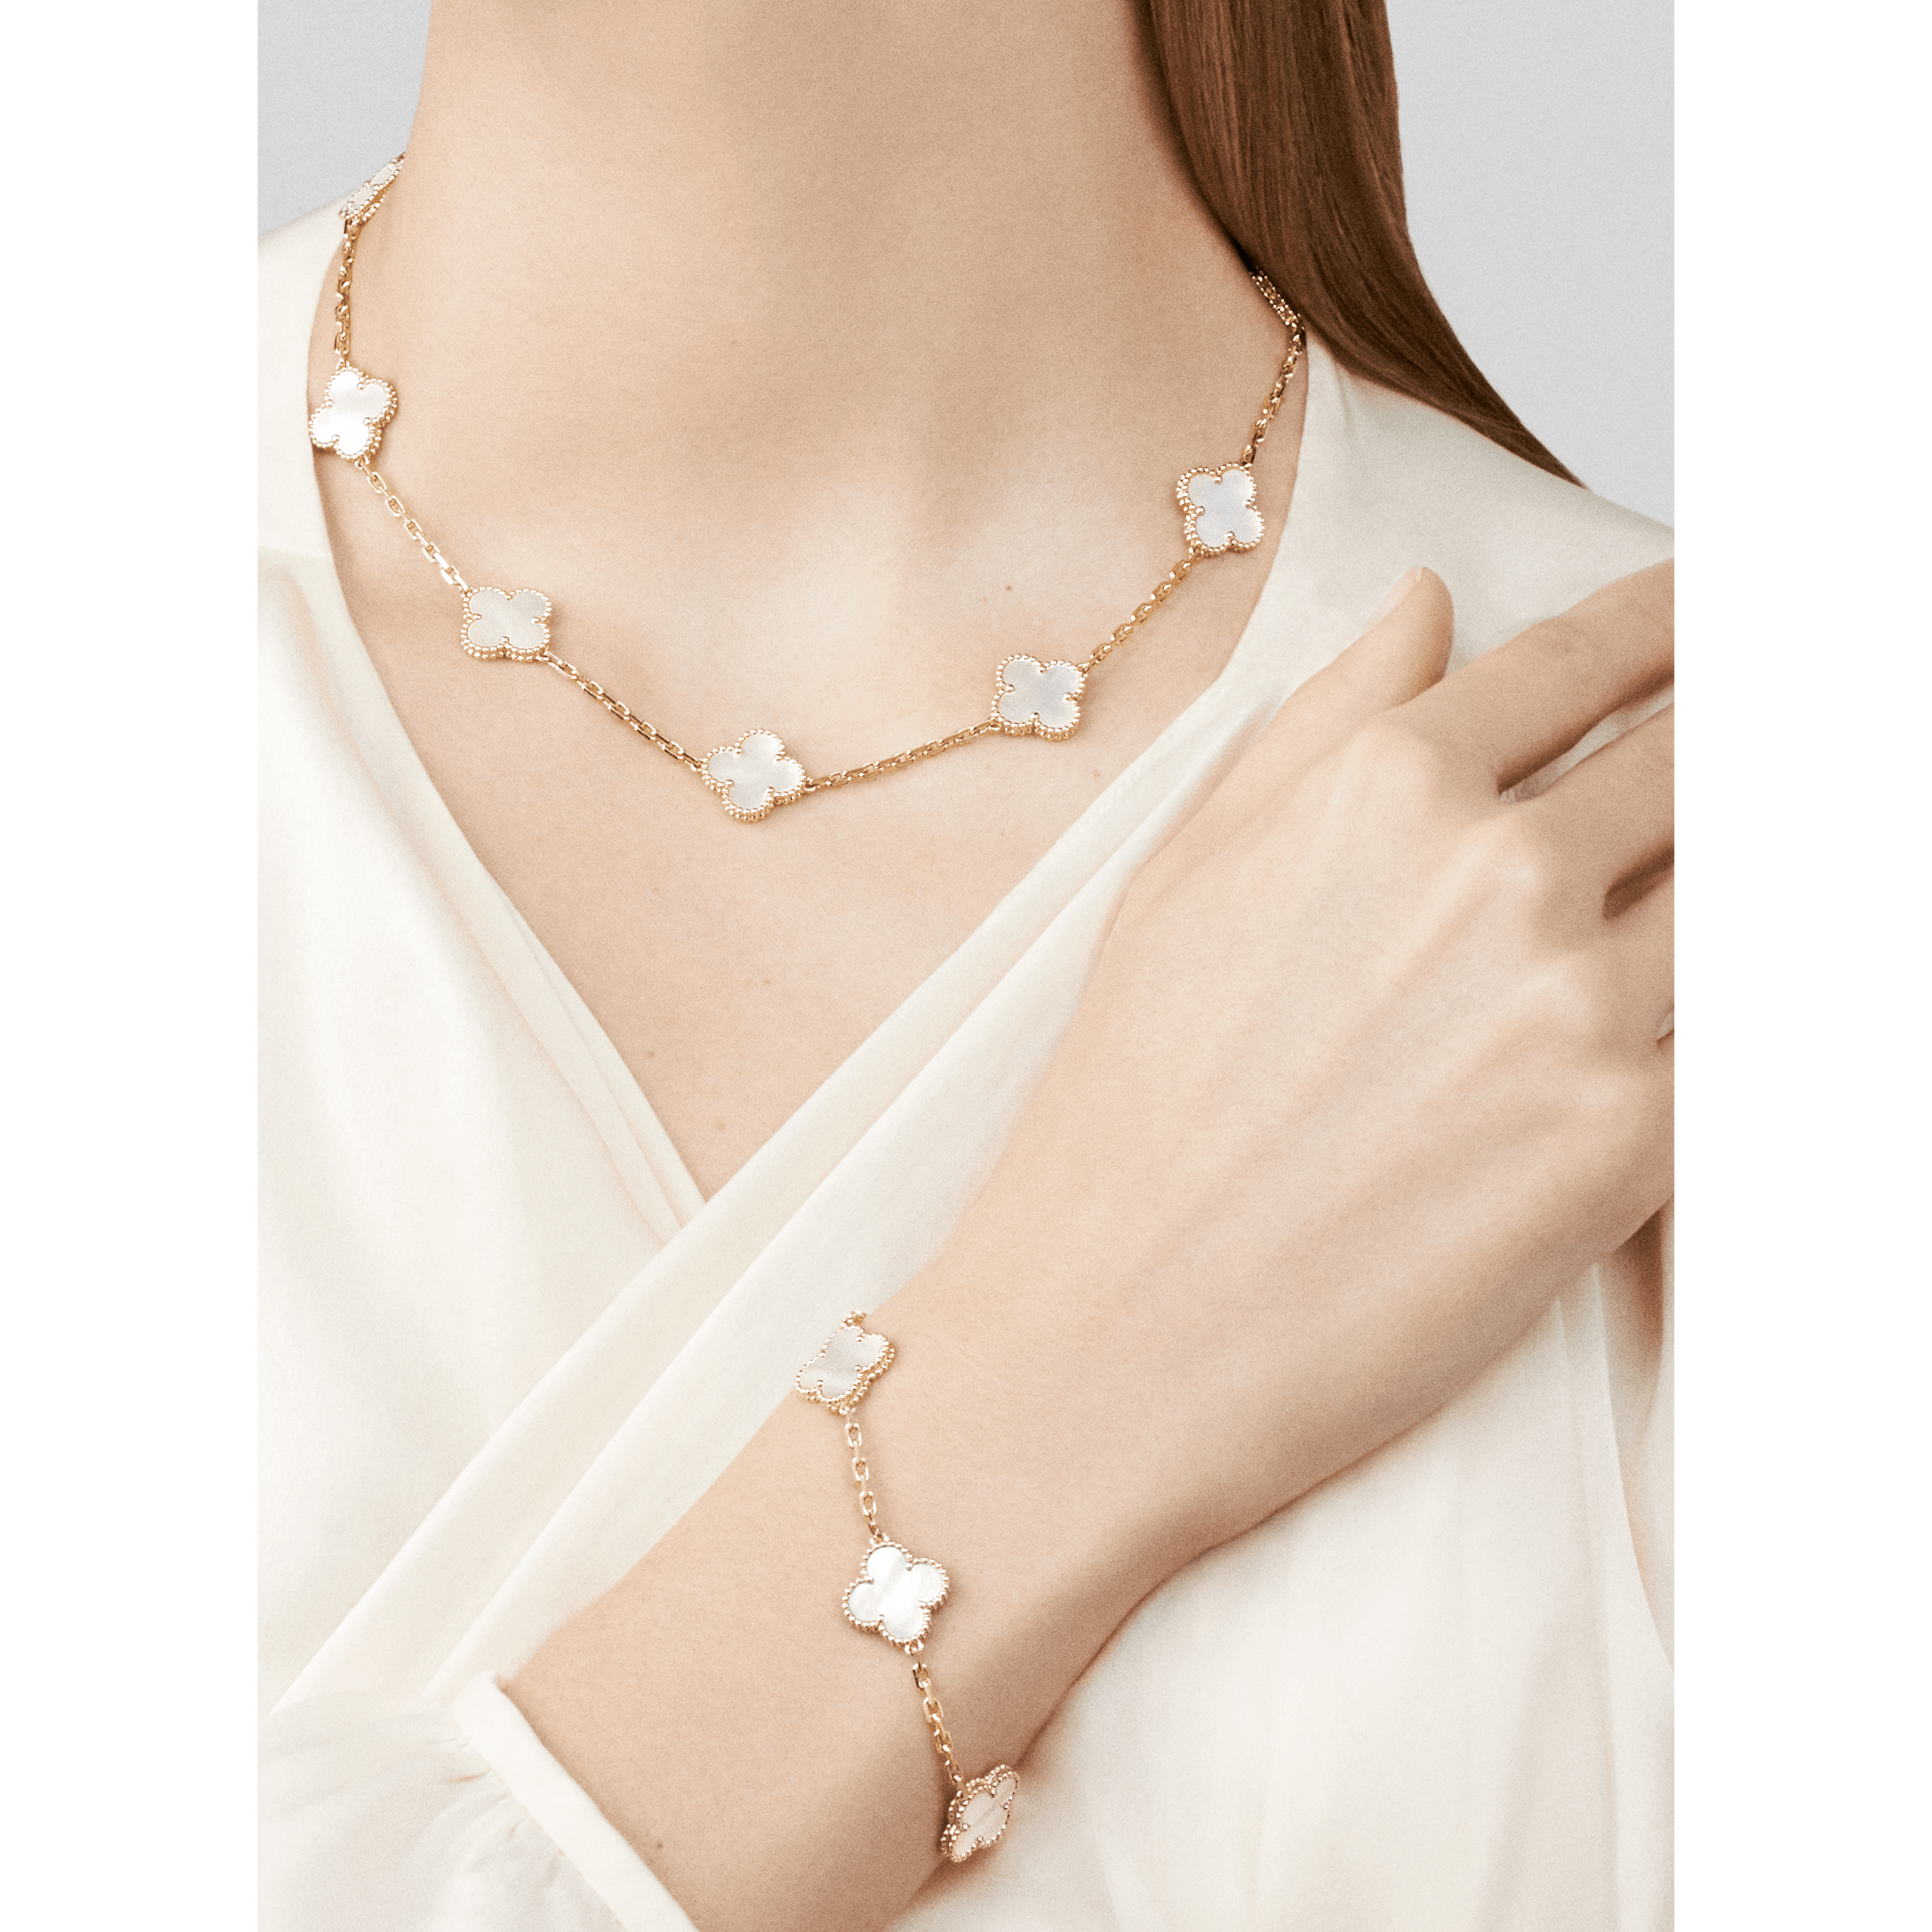 Semi Van Cleef & Arpels Sweet Alhambra white mother of pearl necklace